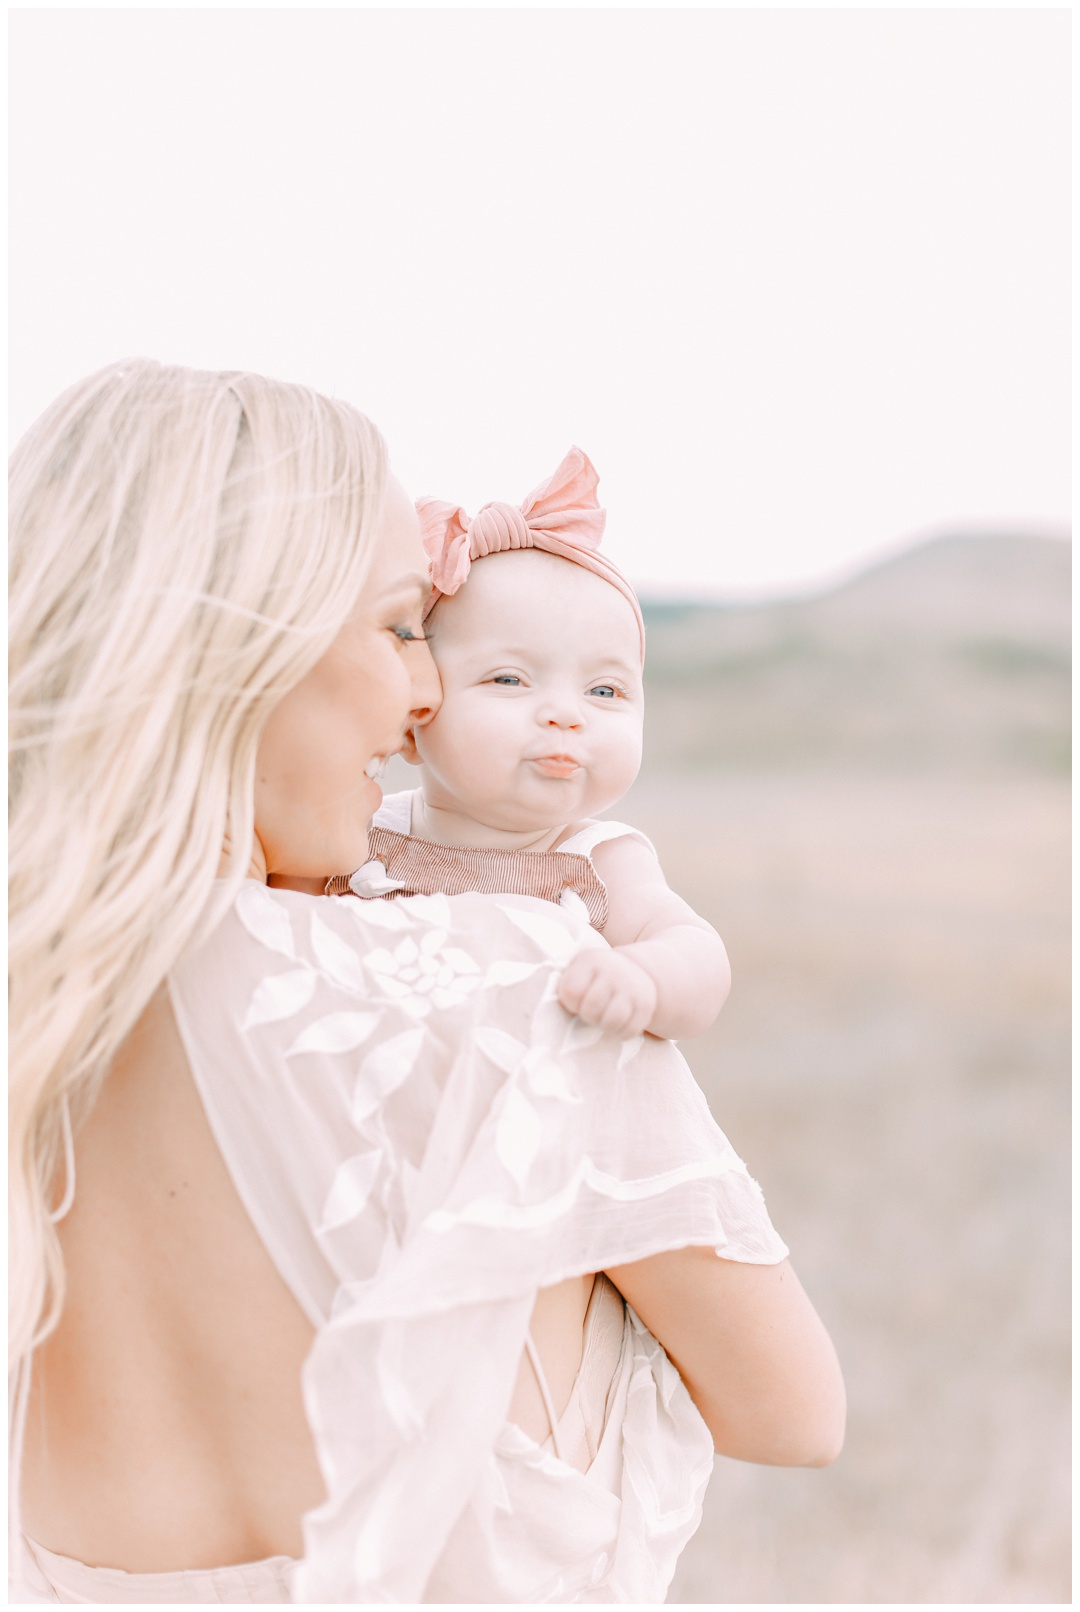 Newport_Beach_Newborn_Lifetsyle_Photographer_Orange_County_Family_Photography_Cori_Kleckner_Photography_Orange_County_Family_Photographer_Newborn_Photos_Session__1269.jpg